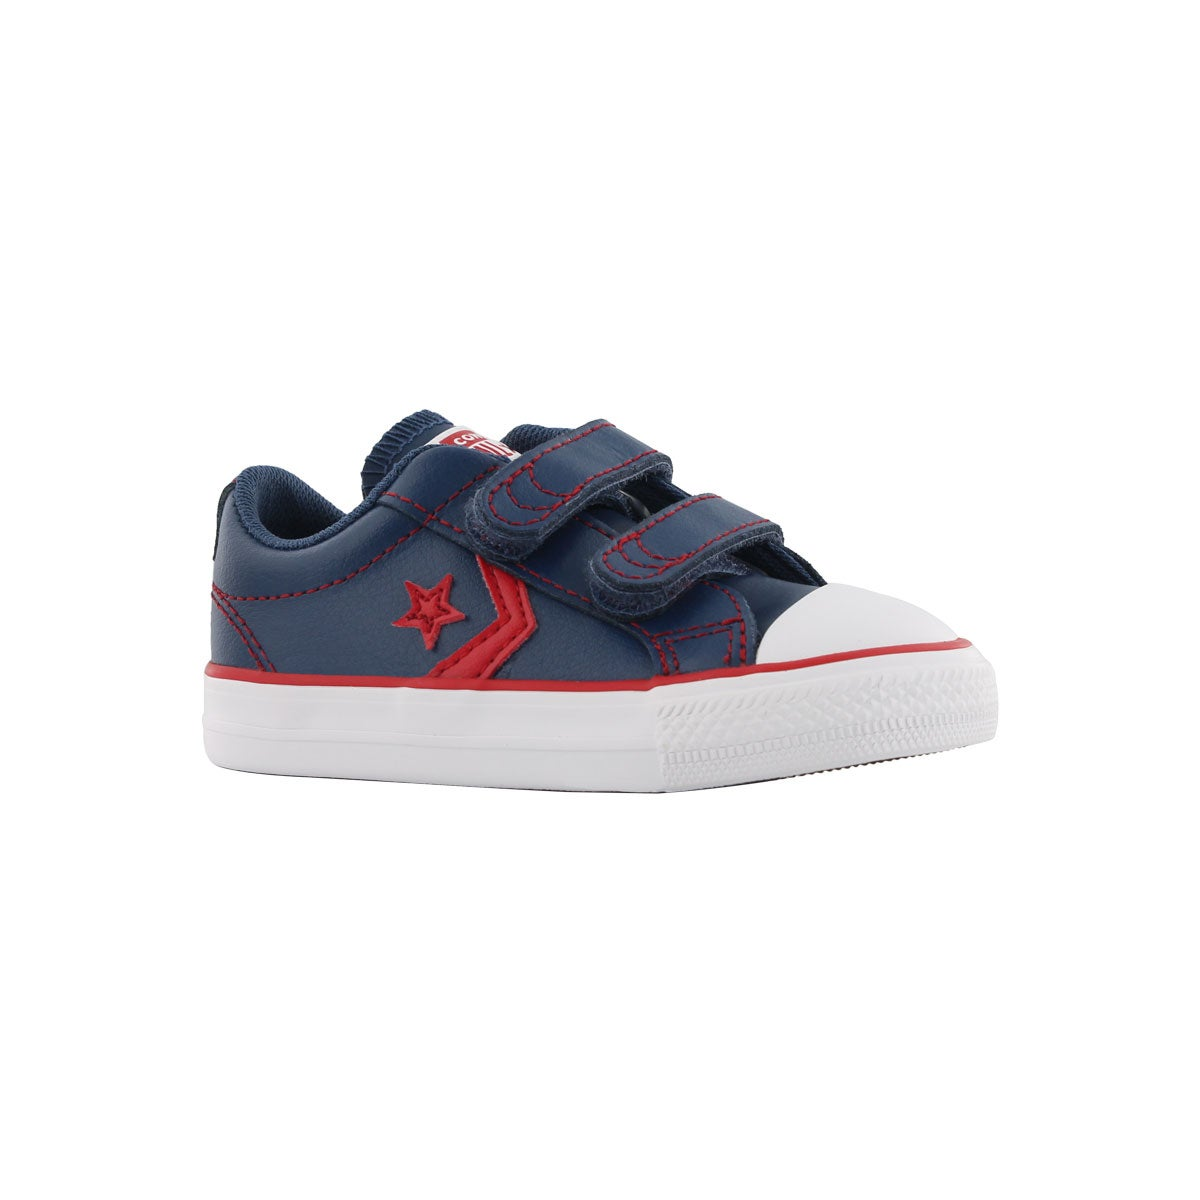 Infants' CT ALL STAR PLAYER 2V blu/red sneakers